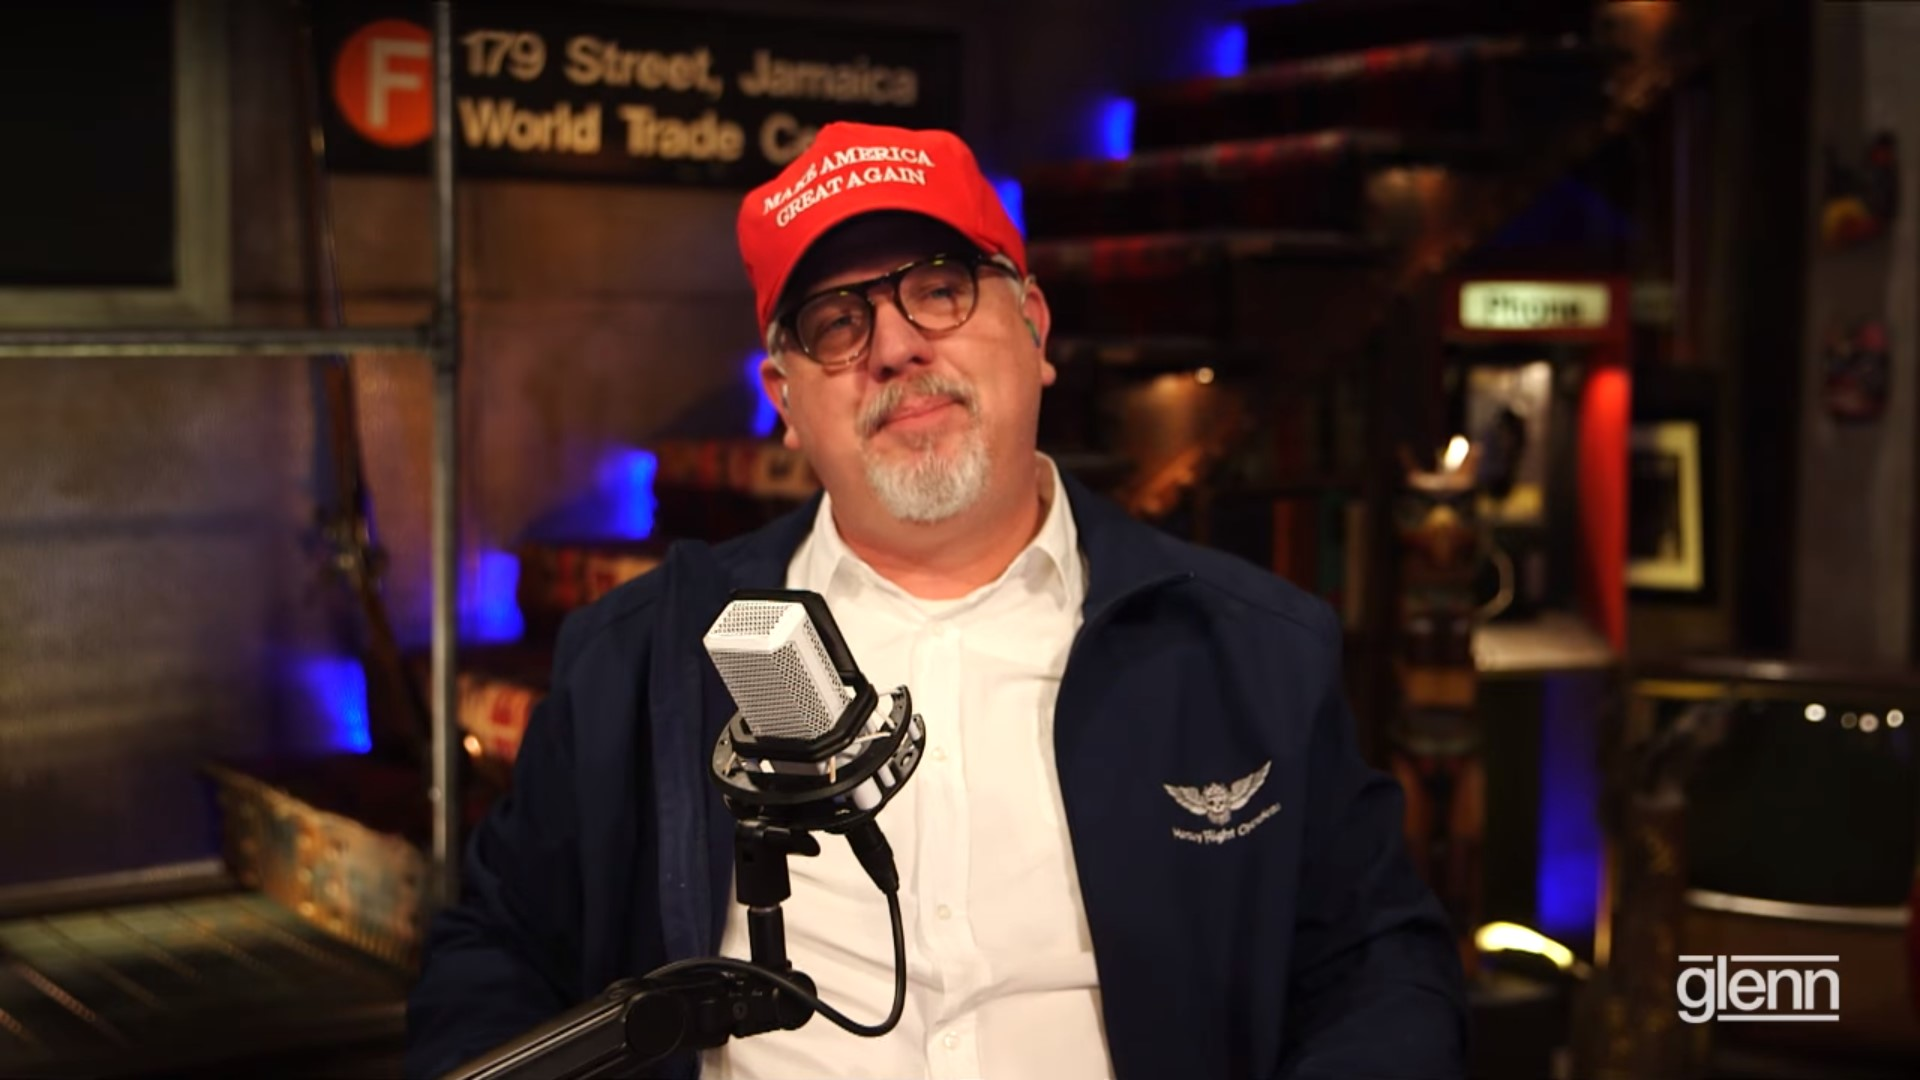 Glenn Beck Throws In #NeverTrump Towel, Puts On MAGA Cap, And Boards Trump Train